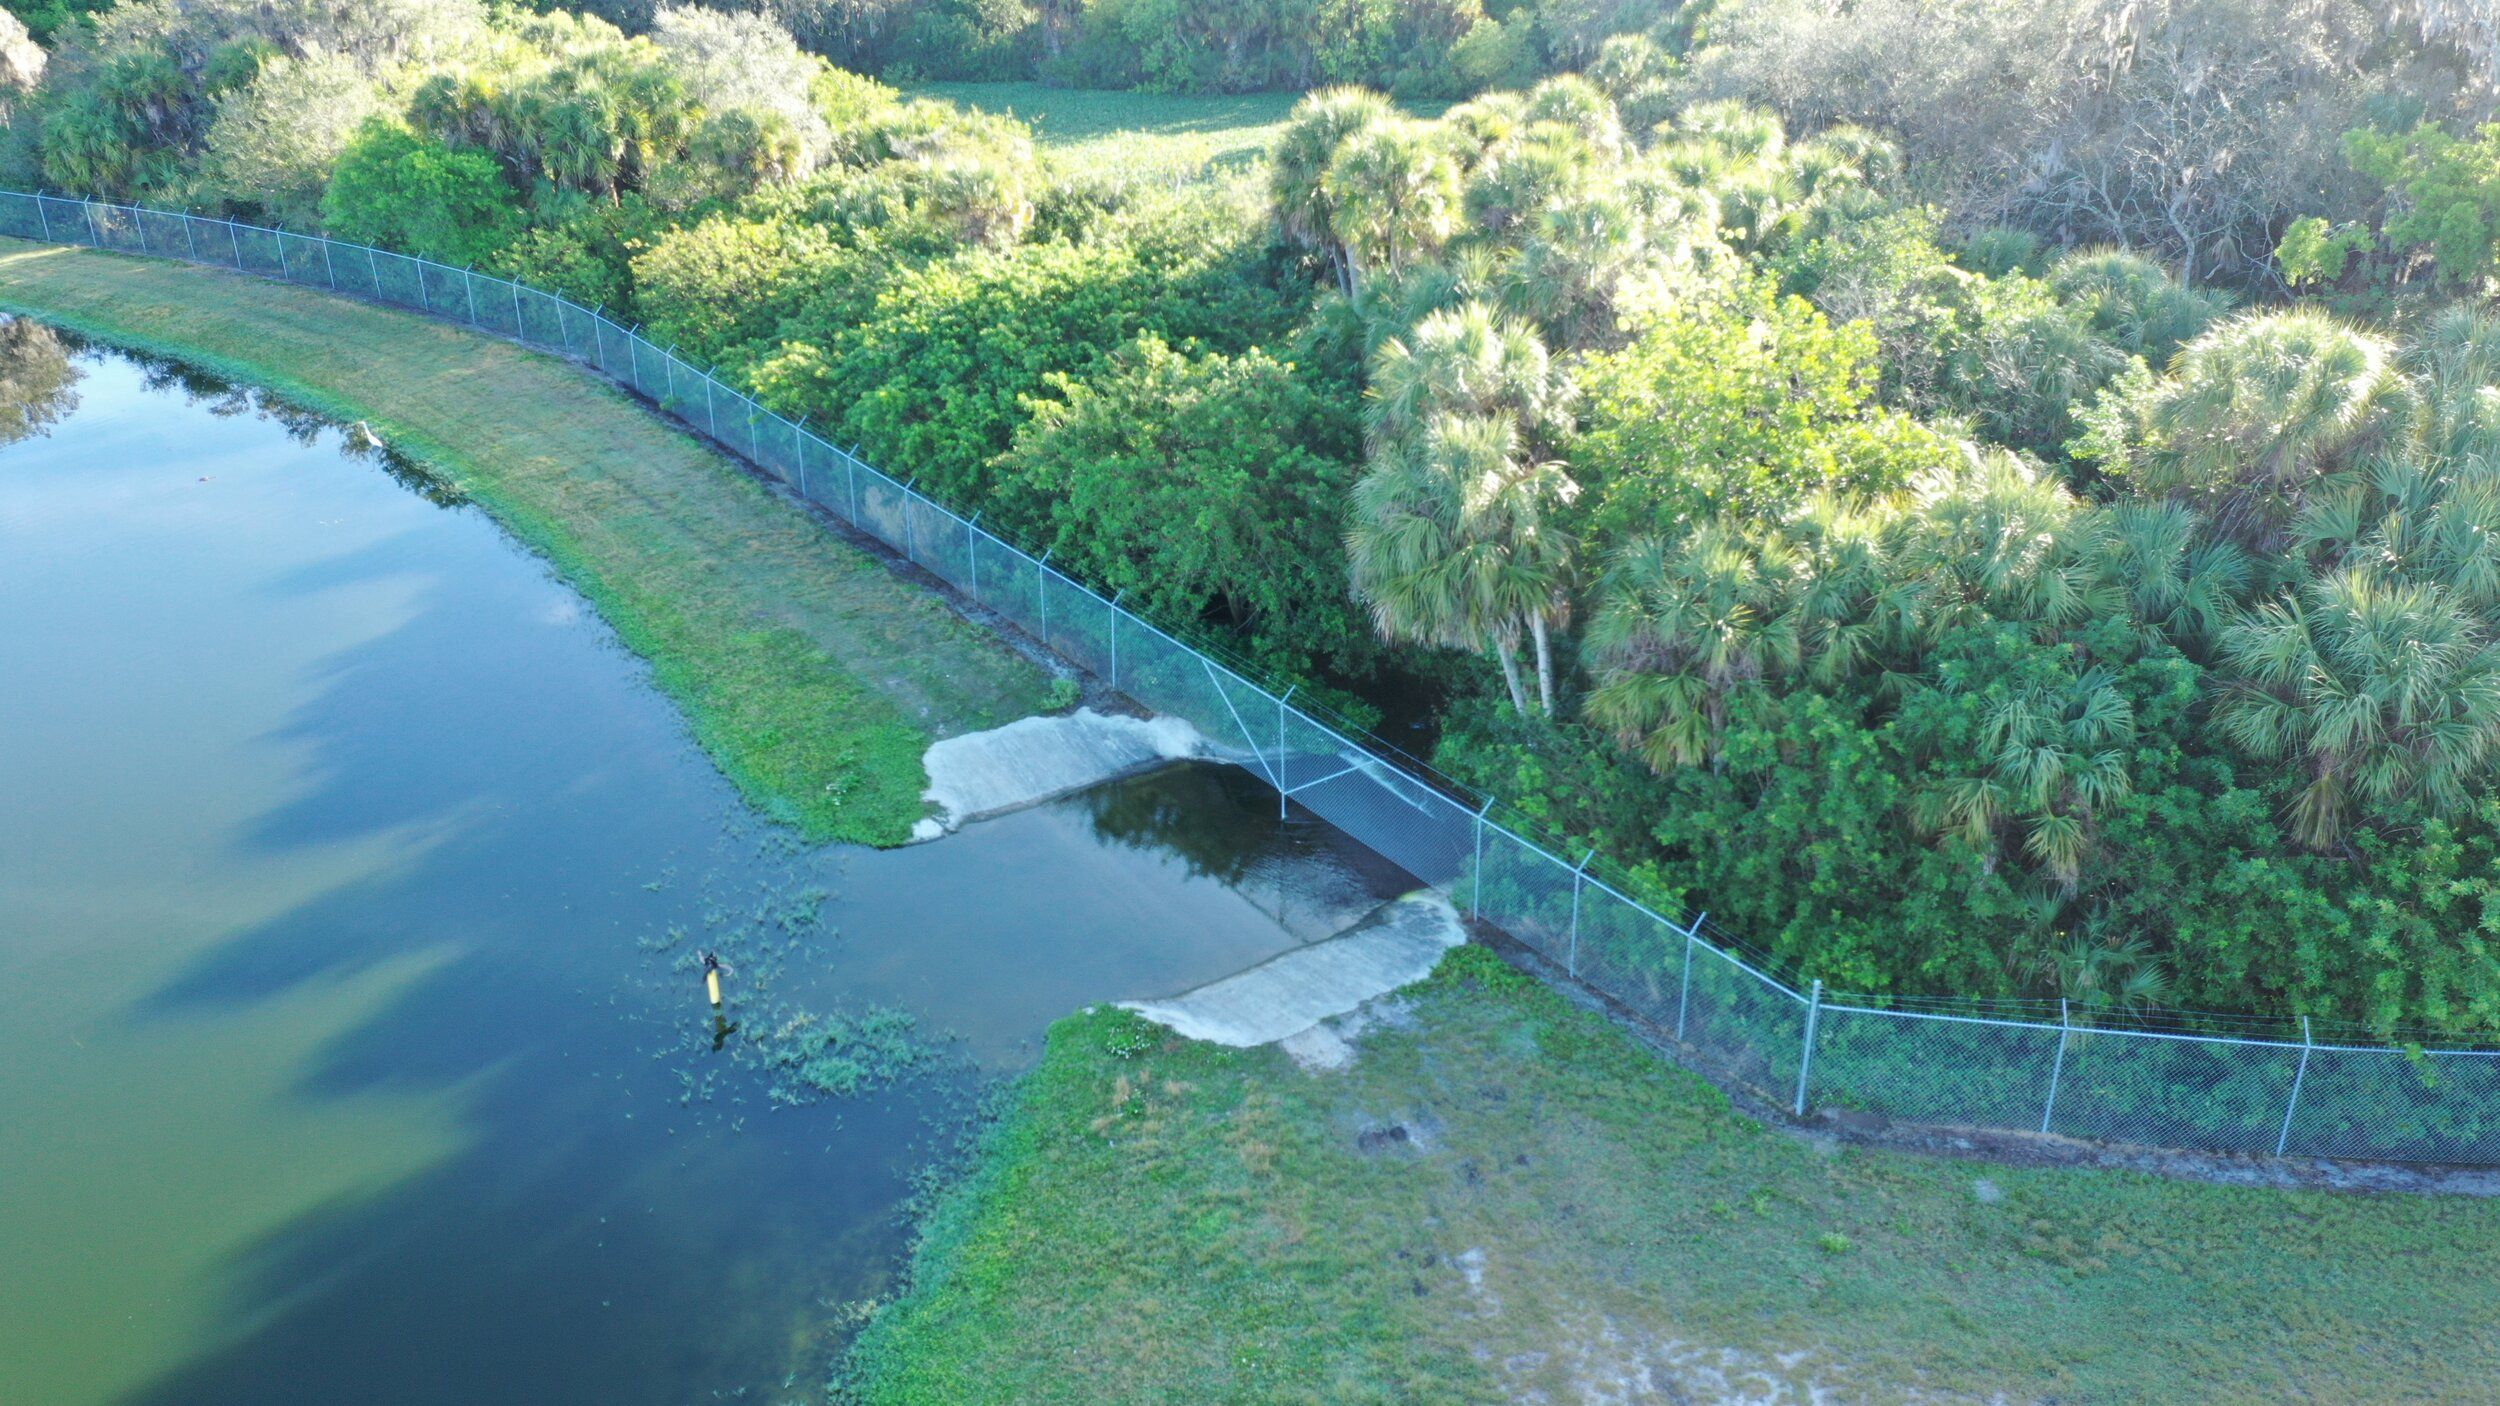 Sarasota County wastewater overflowing into Cowpen Slough, February 2019